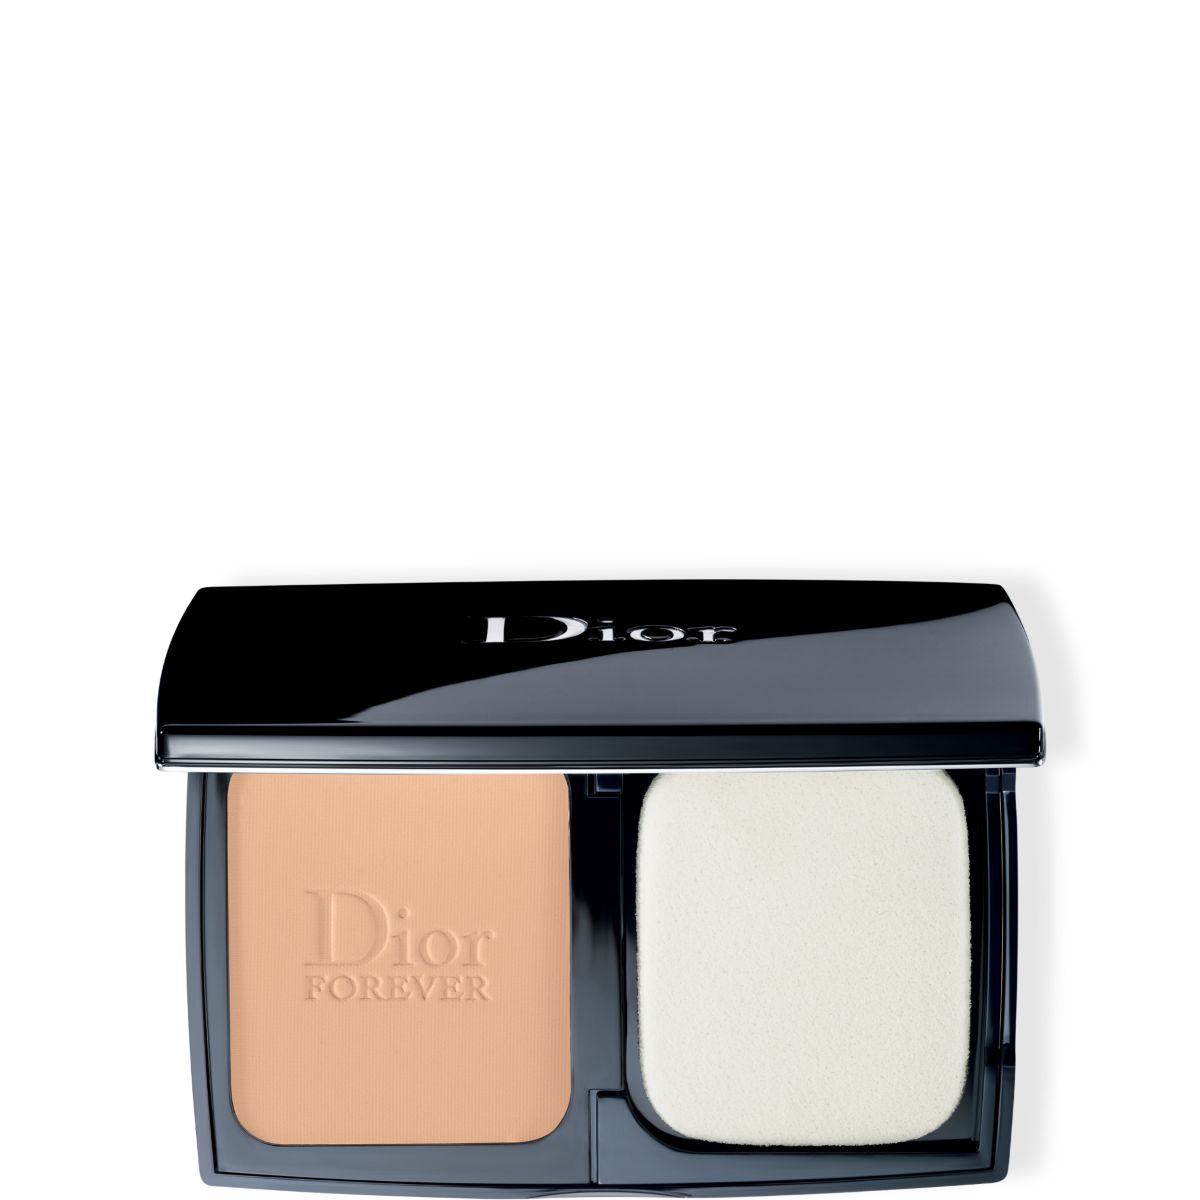 Fond de teint Diorskin Forever Extreme Control - DIOR